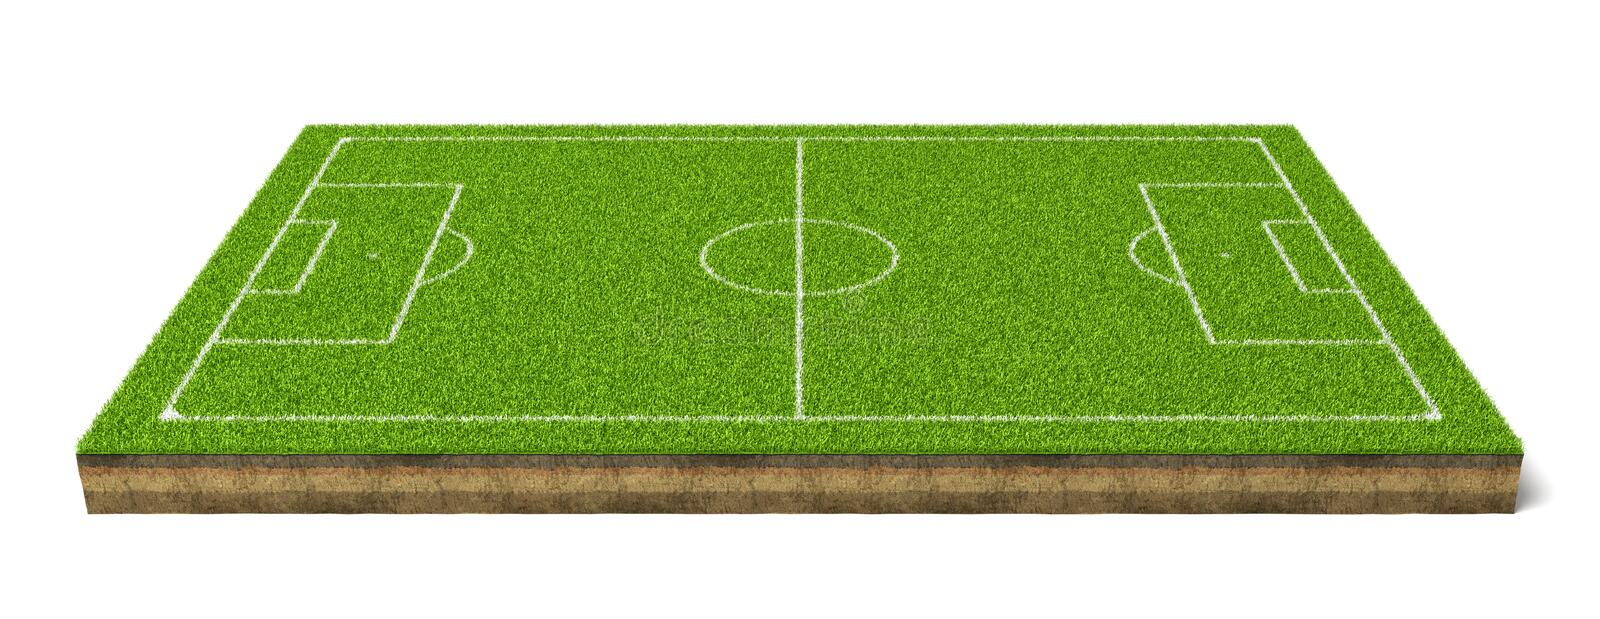 3d rendering of a soccer grass sport field with white lines royalty free stock photo